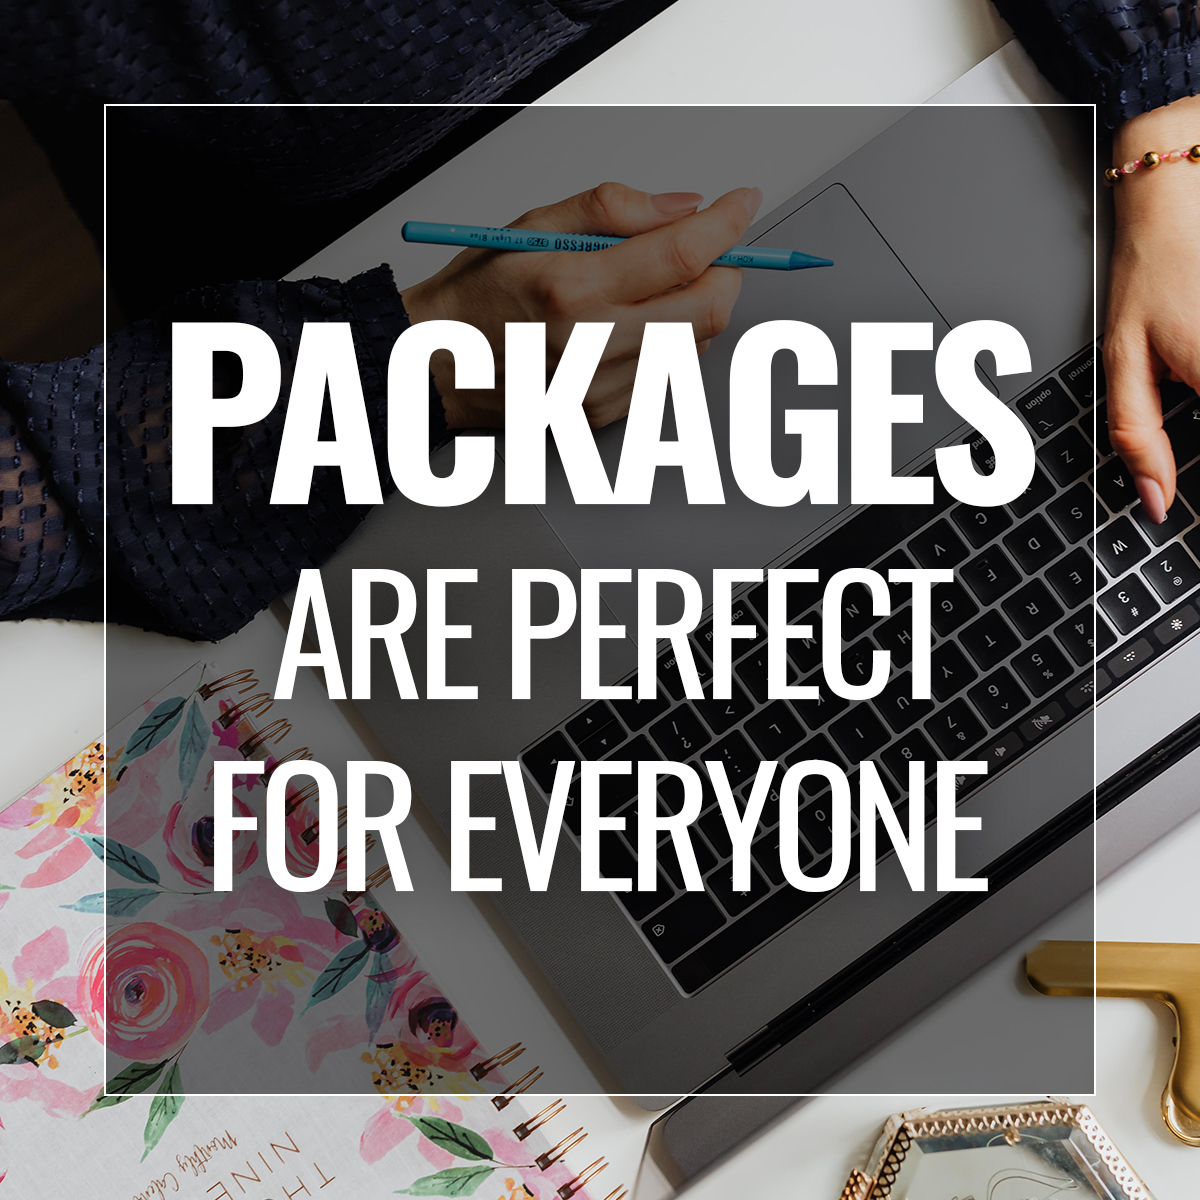 Service packages for everyone